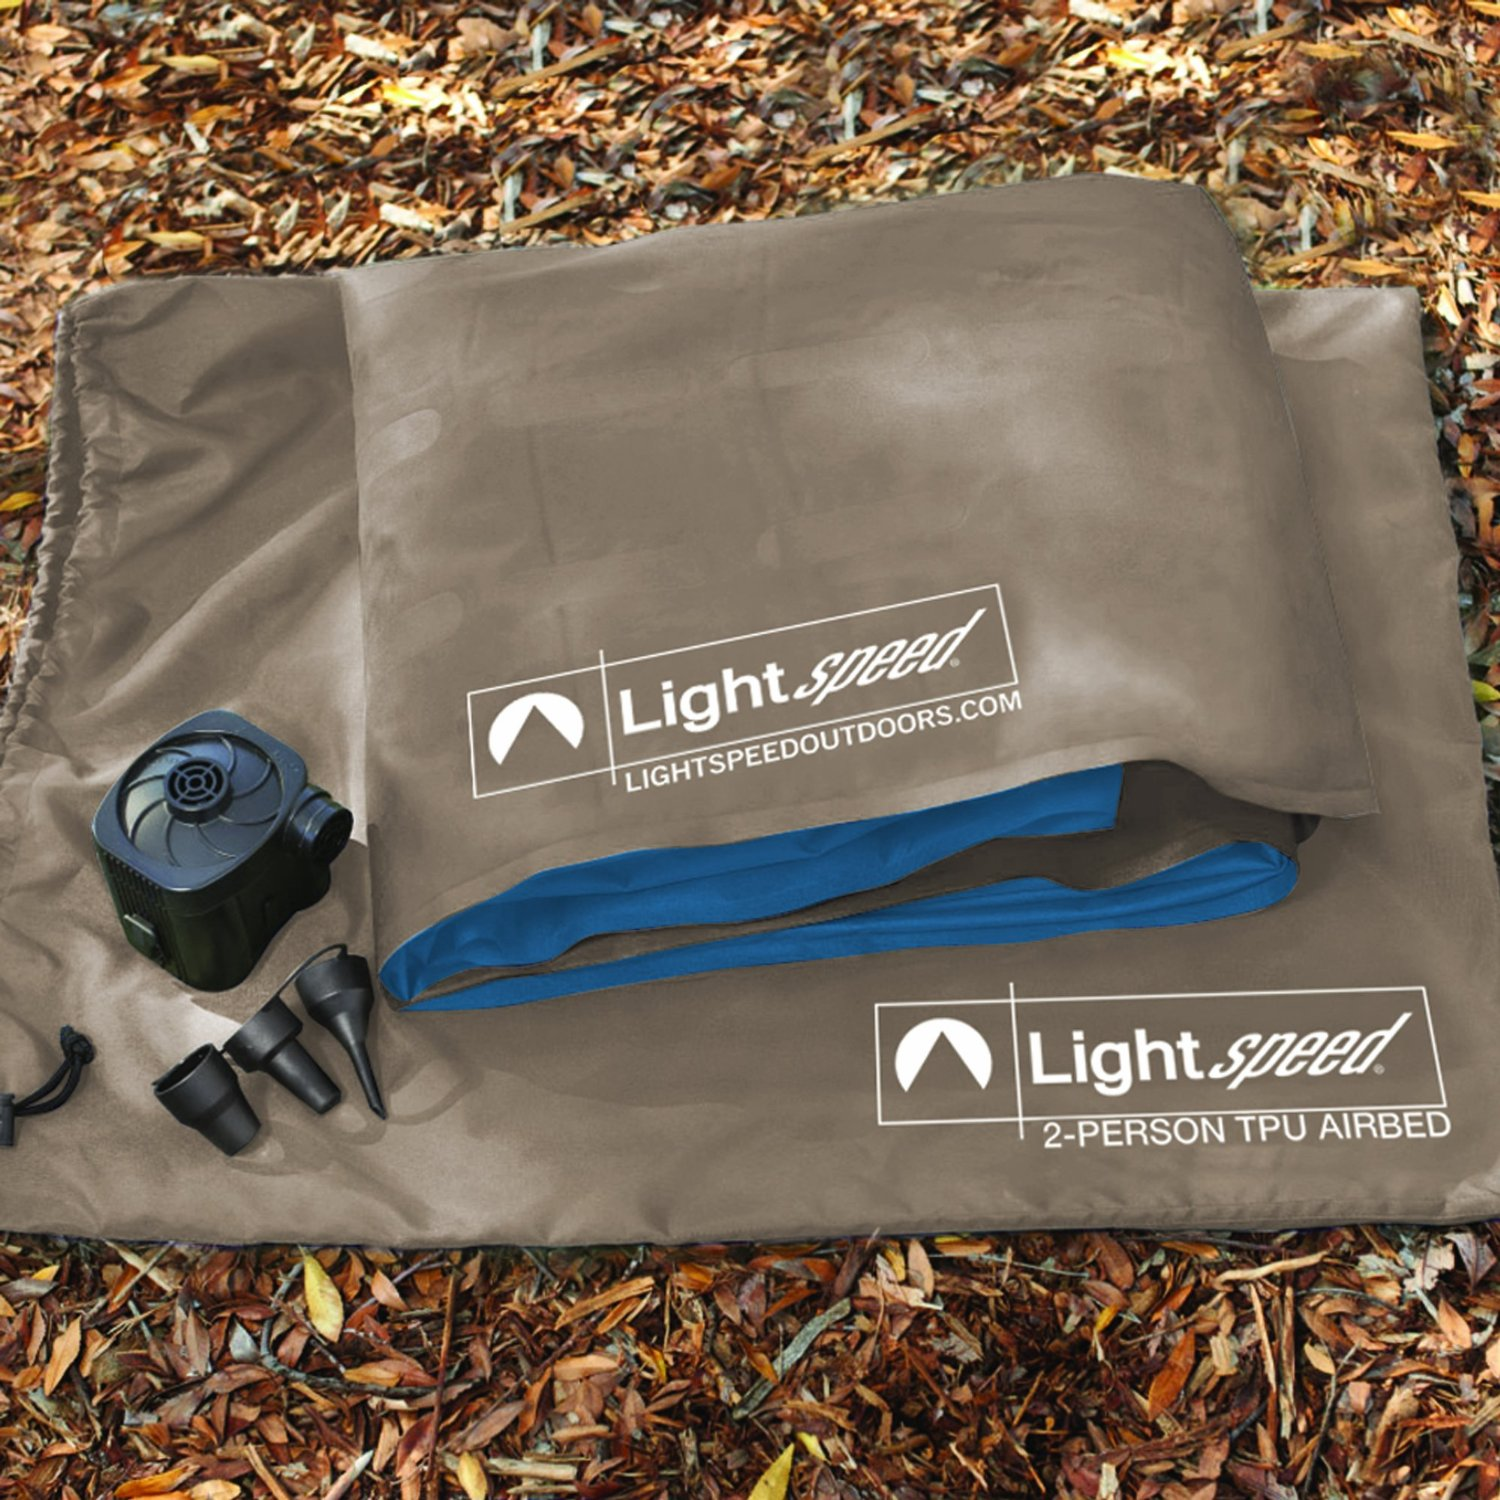 Lightspeed Outdoors Air Bed Battery Pump